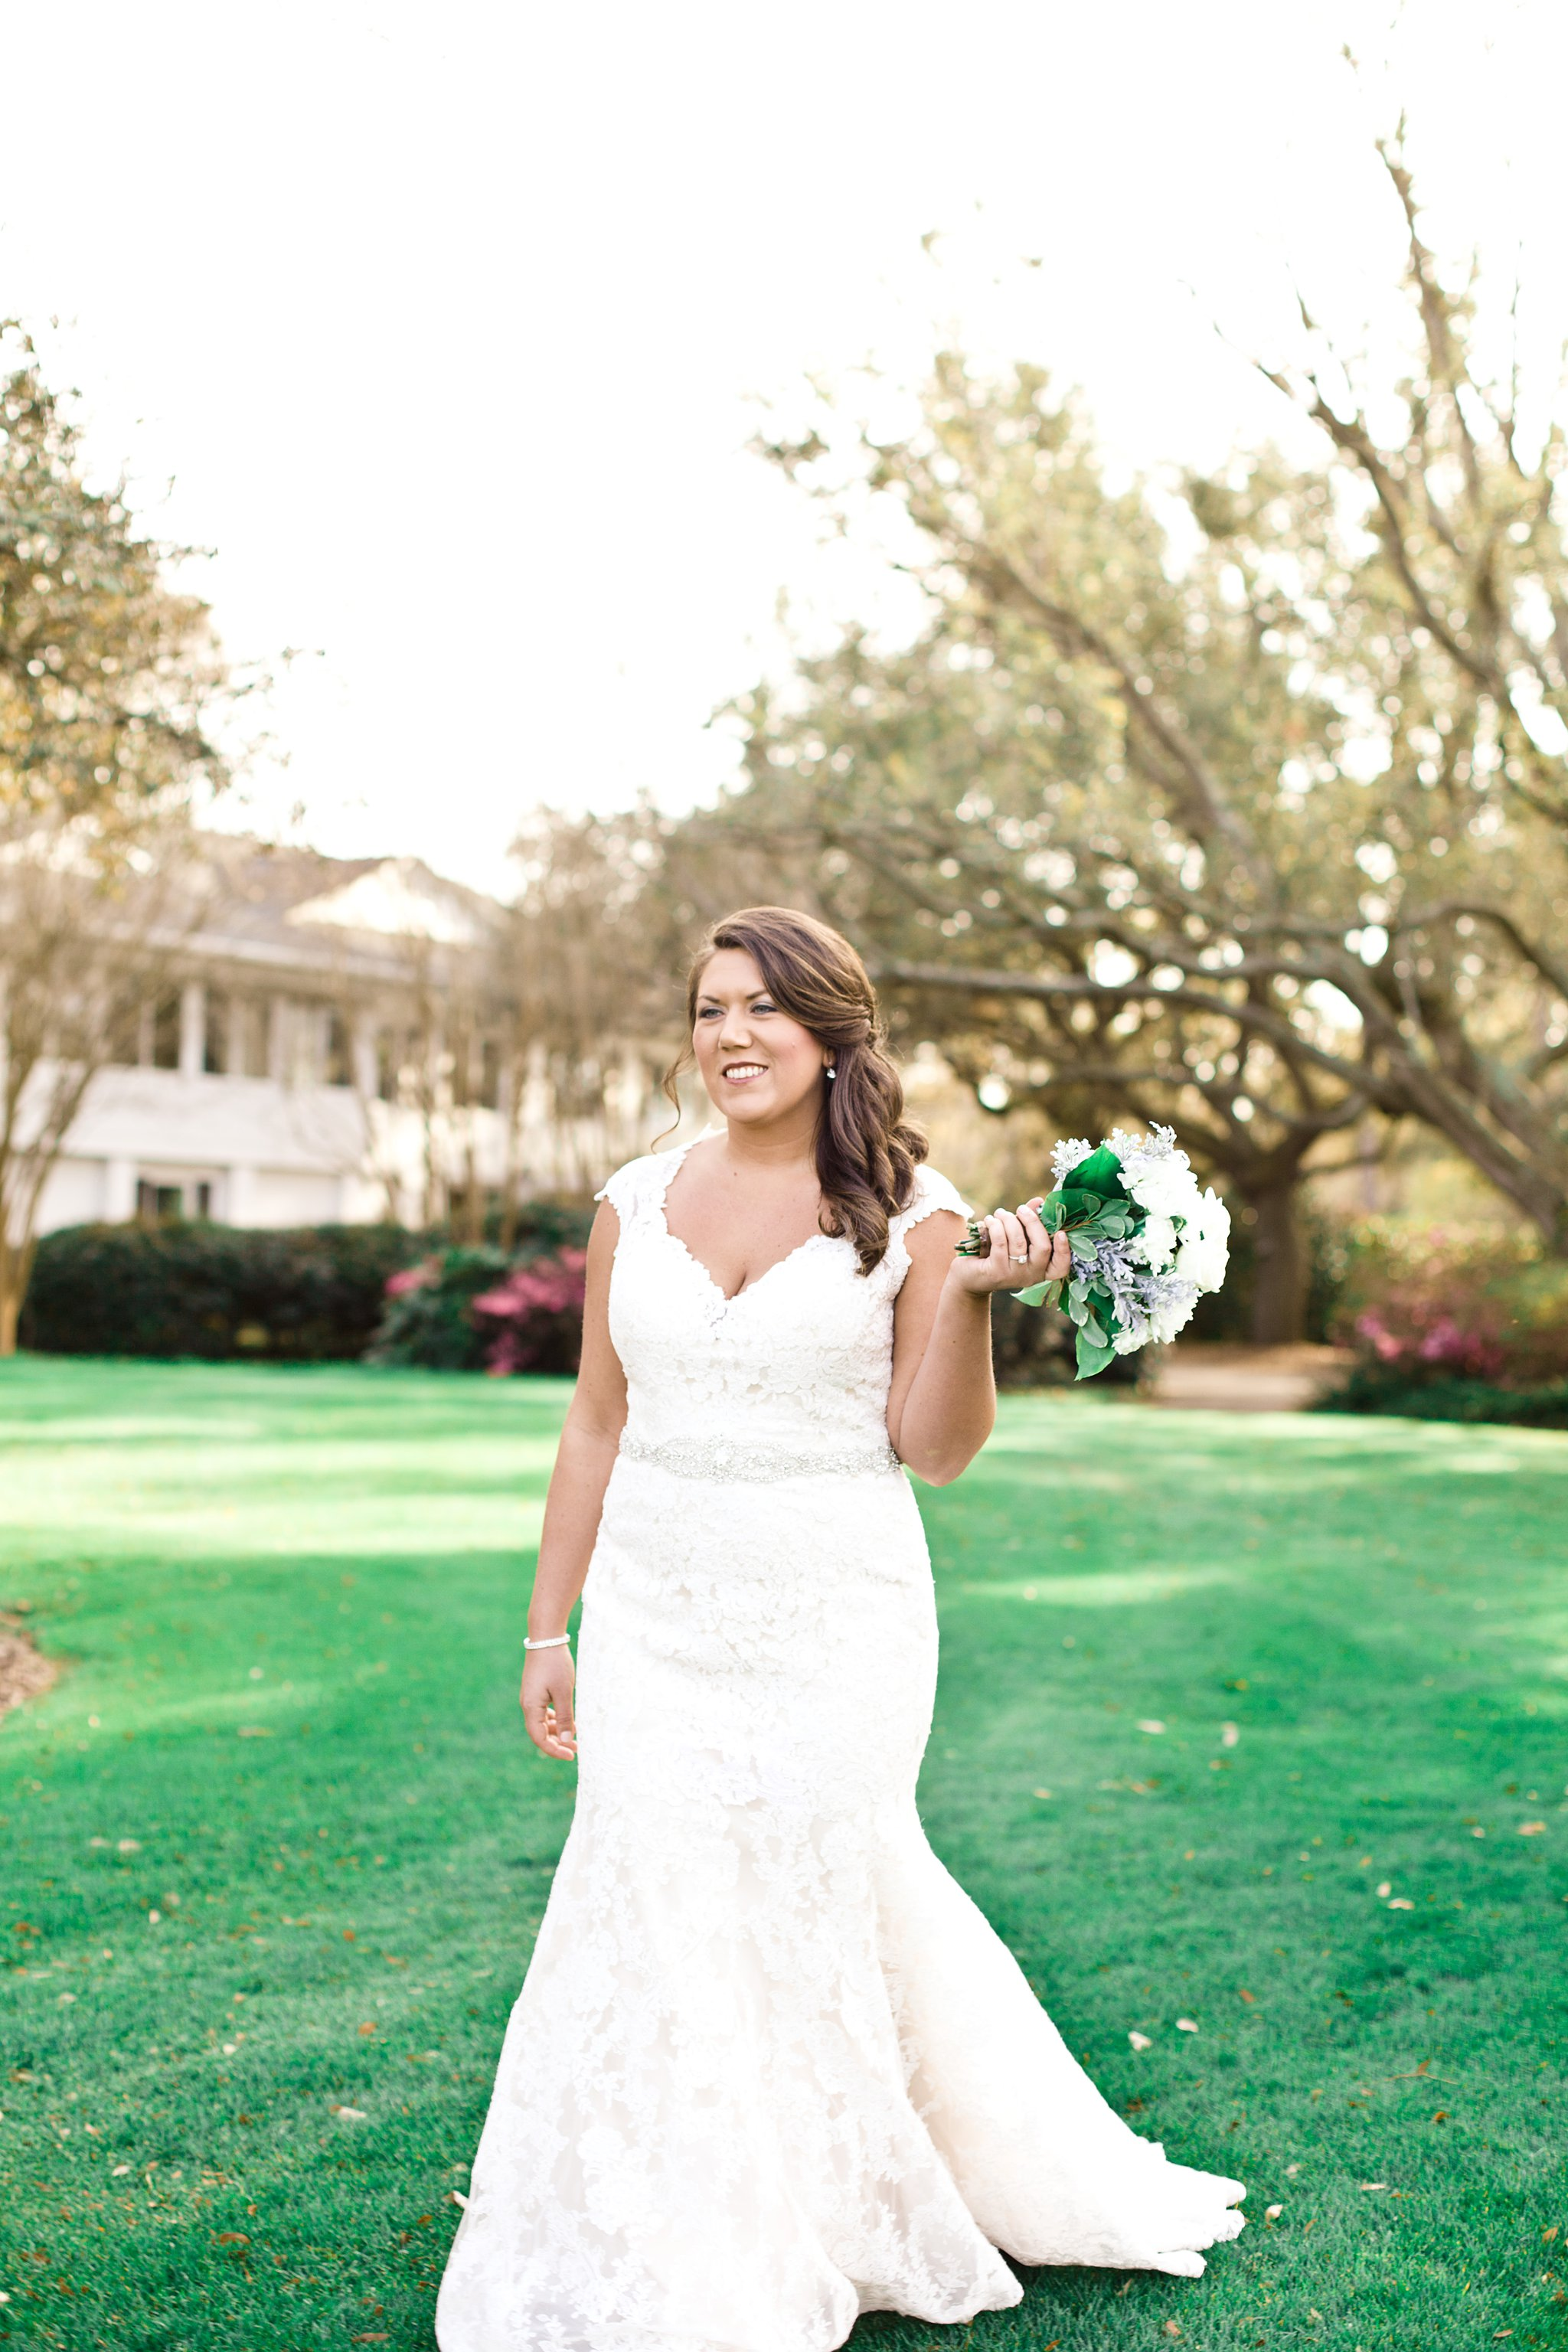 litchfield-golf-country-club-bridal-session-pawleys-island-sc-photos_0106.jpg